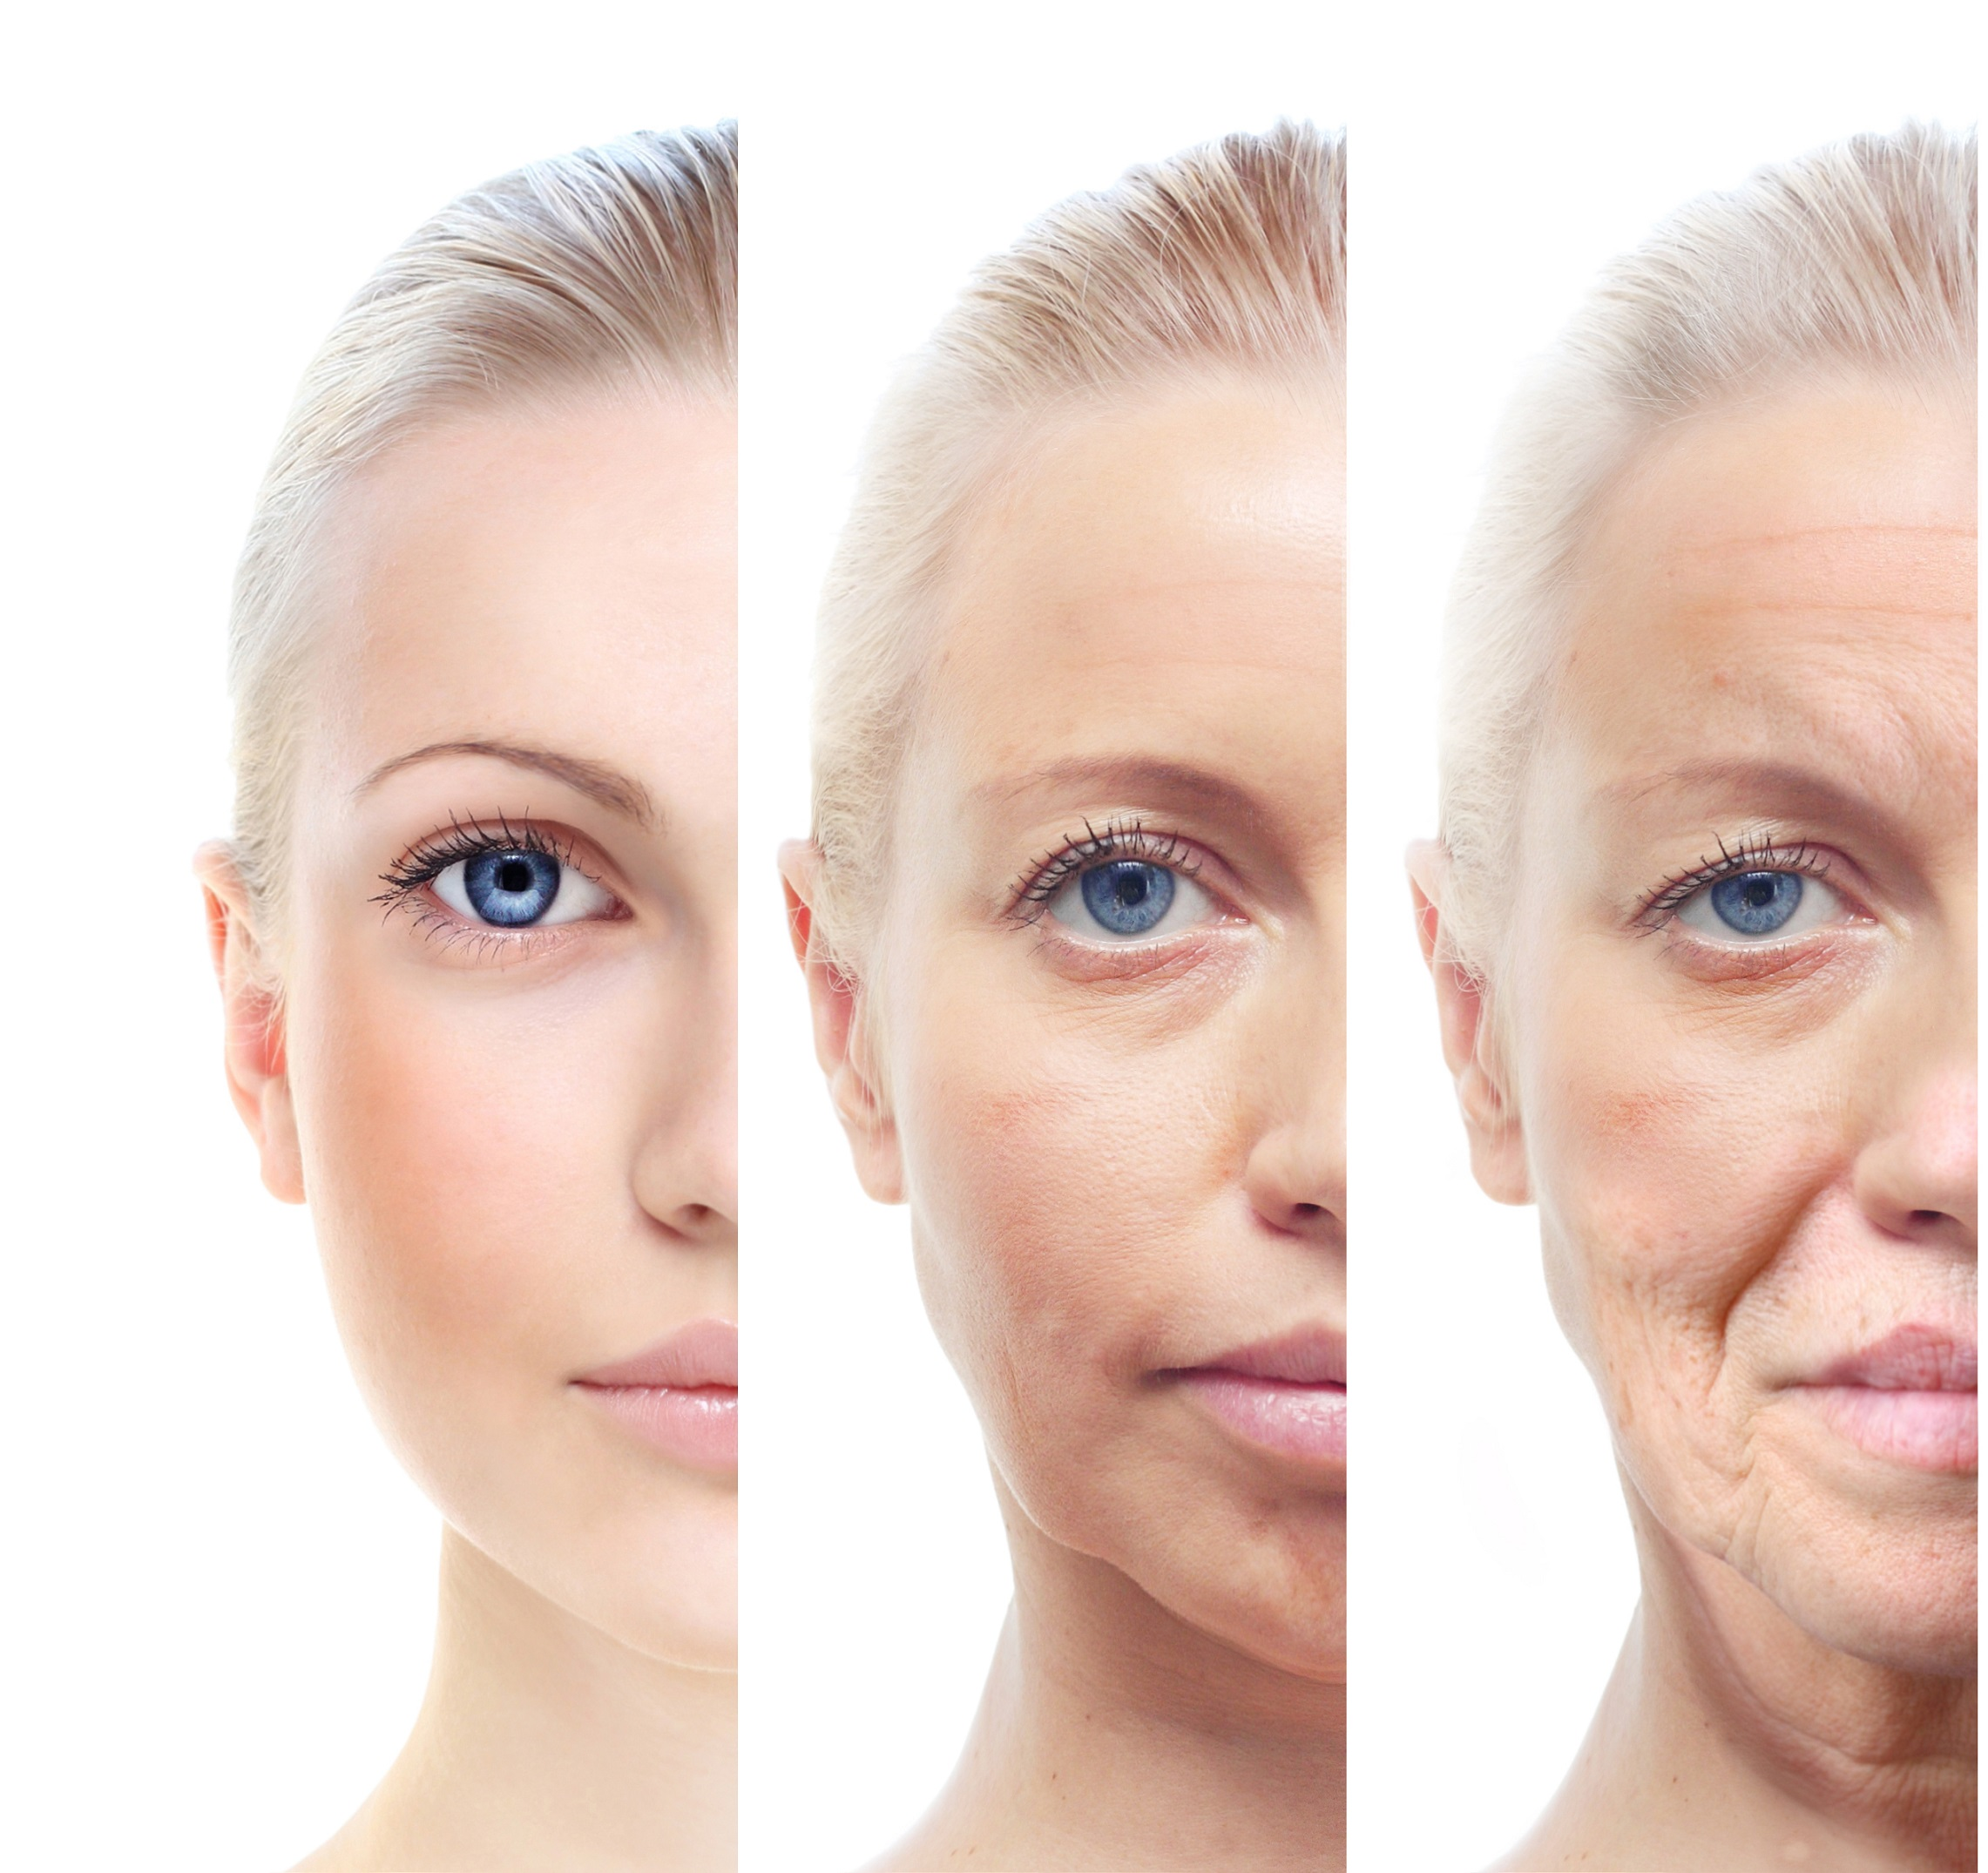 Signs of aging appear in mid-20s, study finds